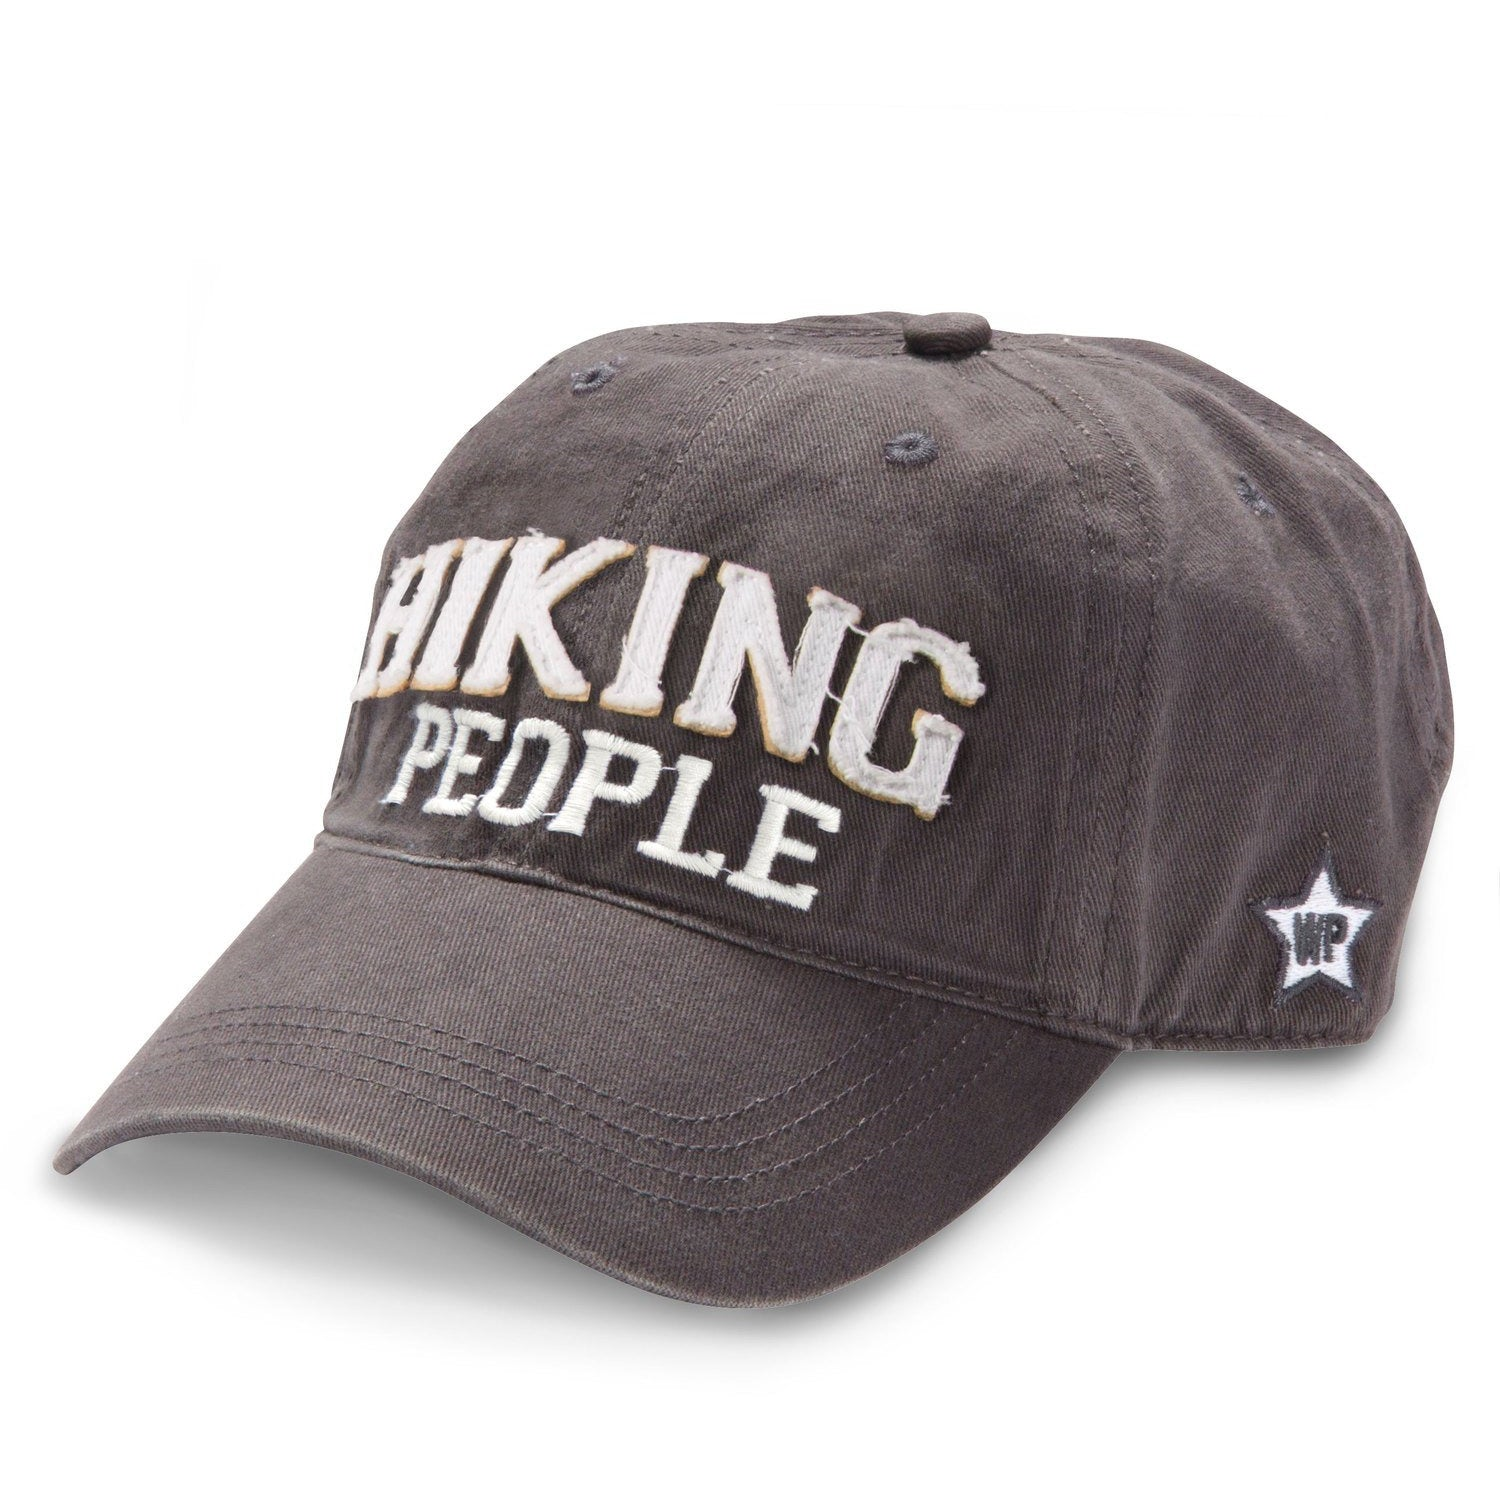 Hiking People Hat